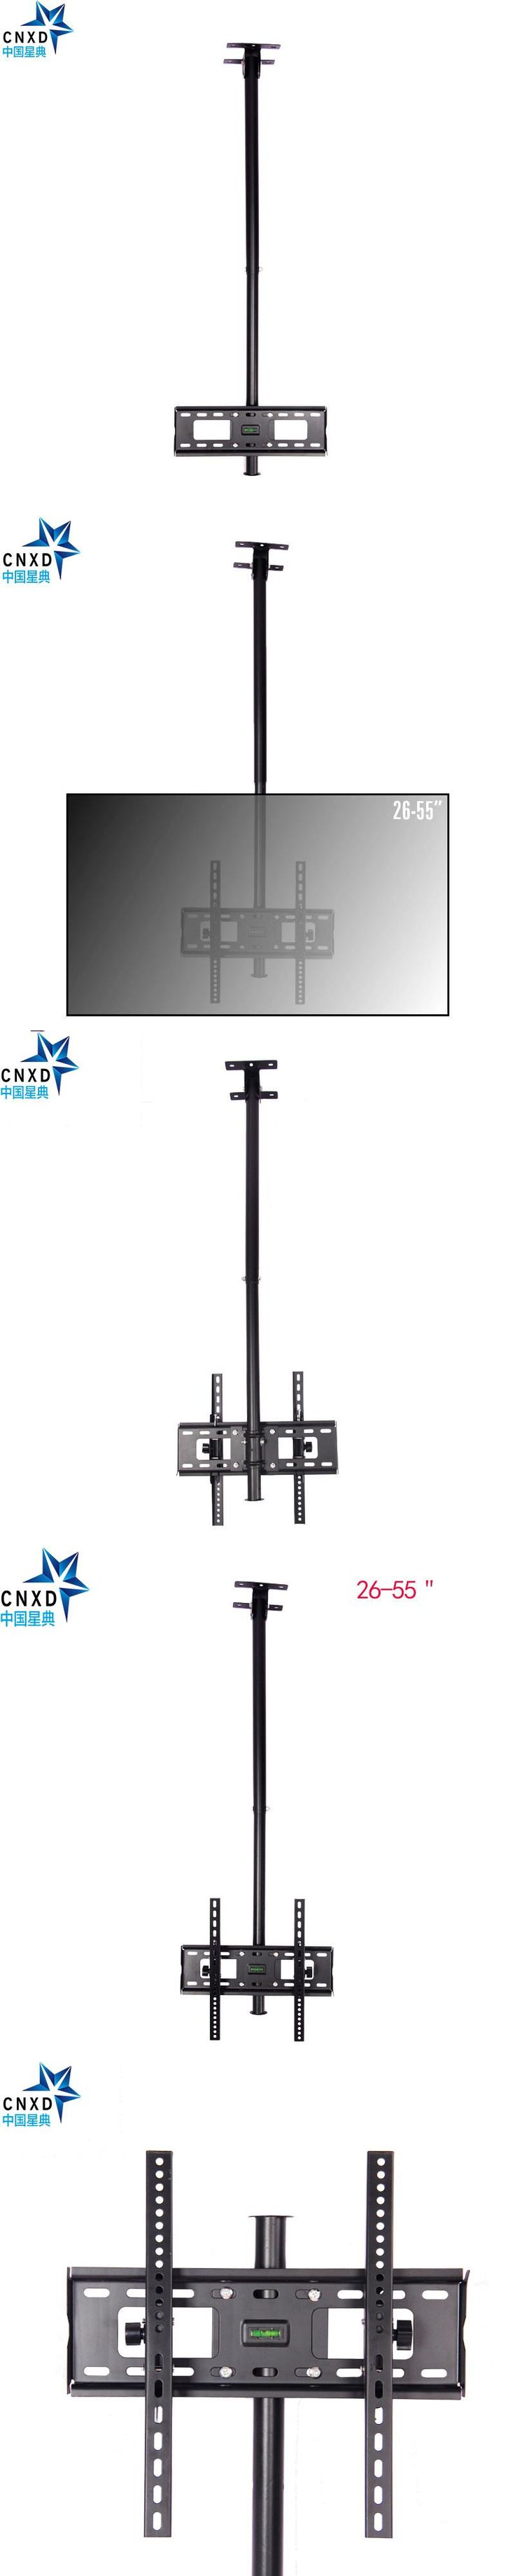 """Adjustable Extension Ceiling TV Mount Fits most 26-55"""" LCD LED Plasma Monitor Flat Panel Screen Display with VESA 400*400"""